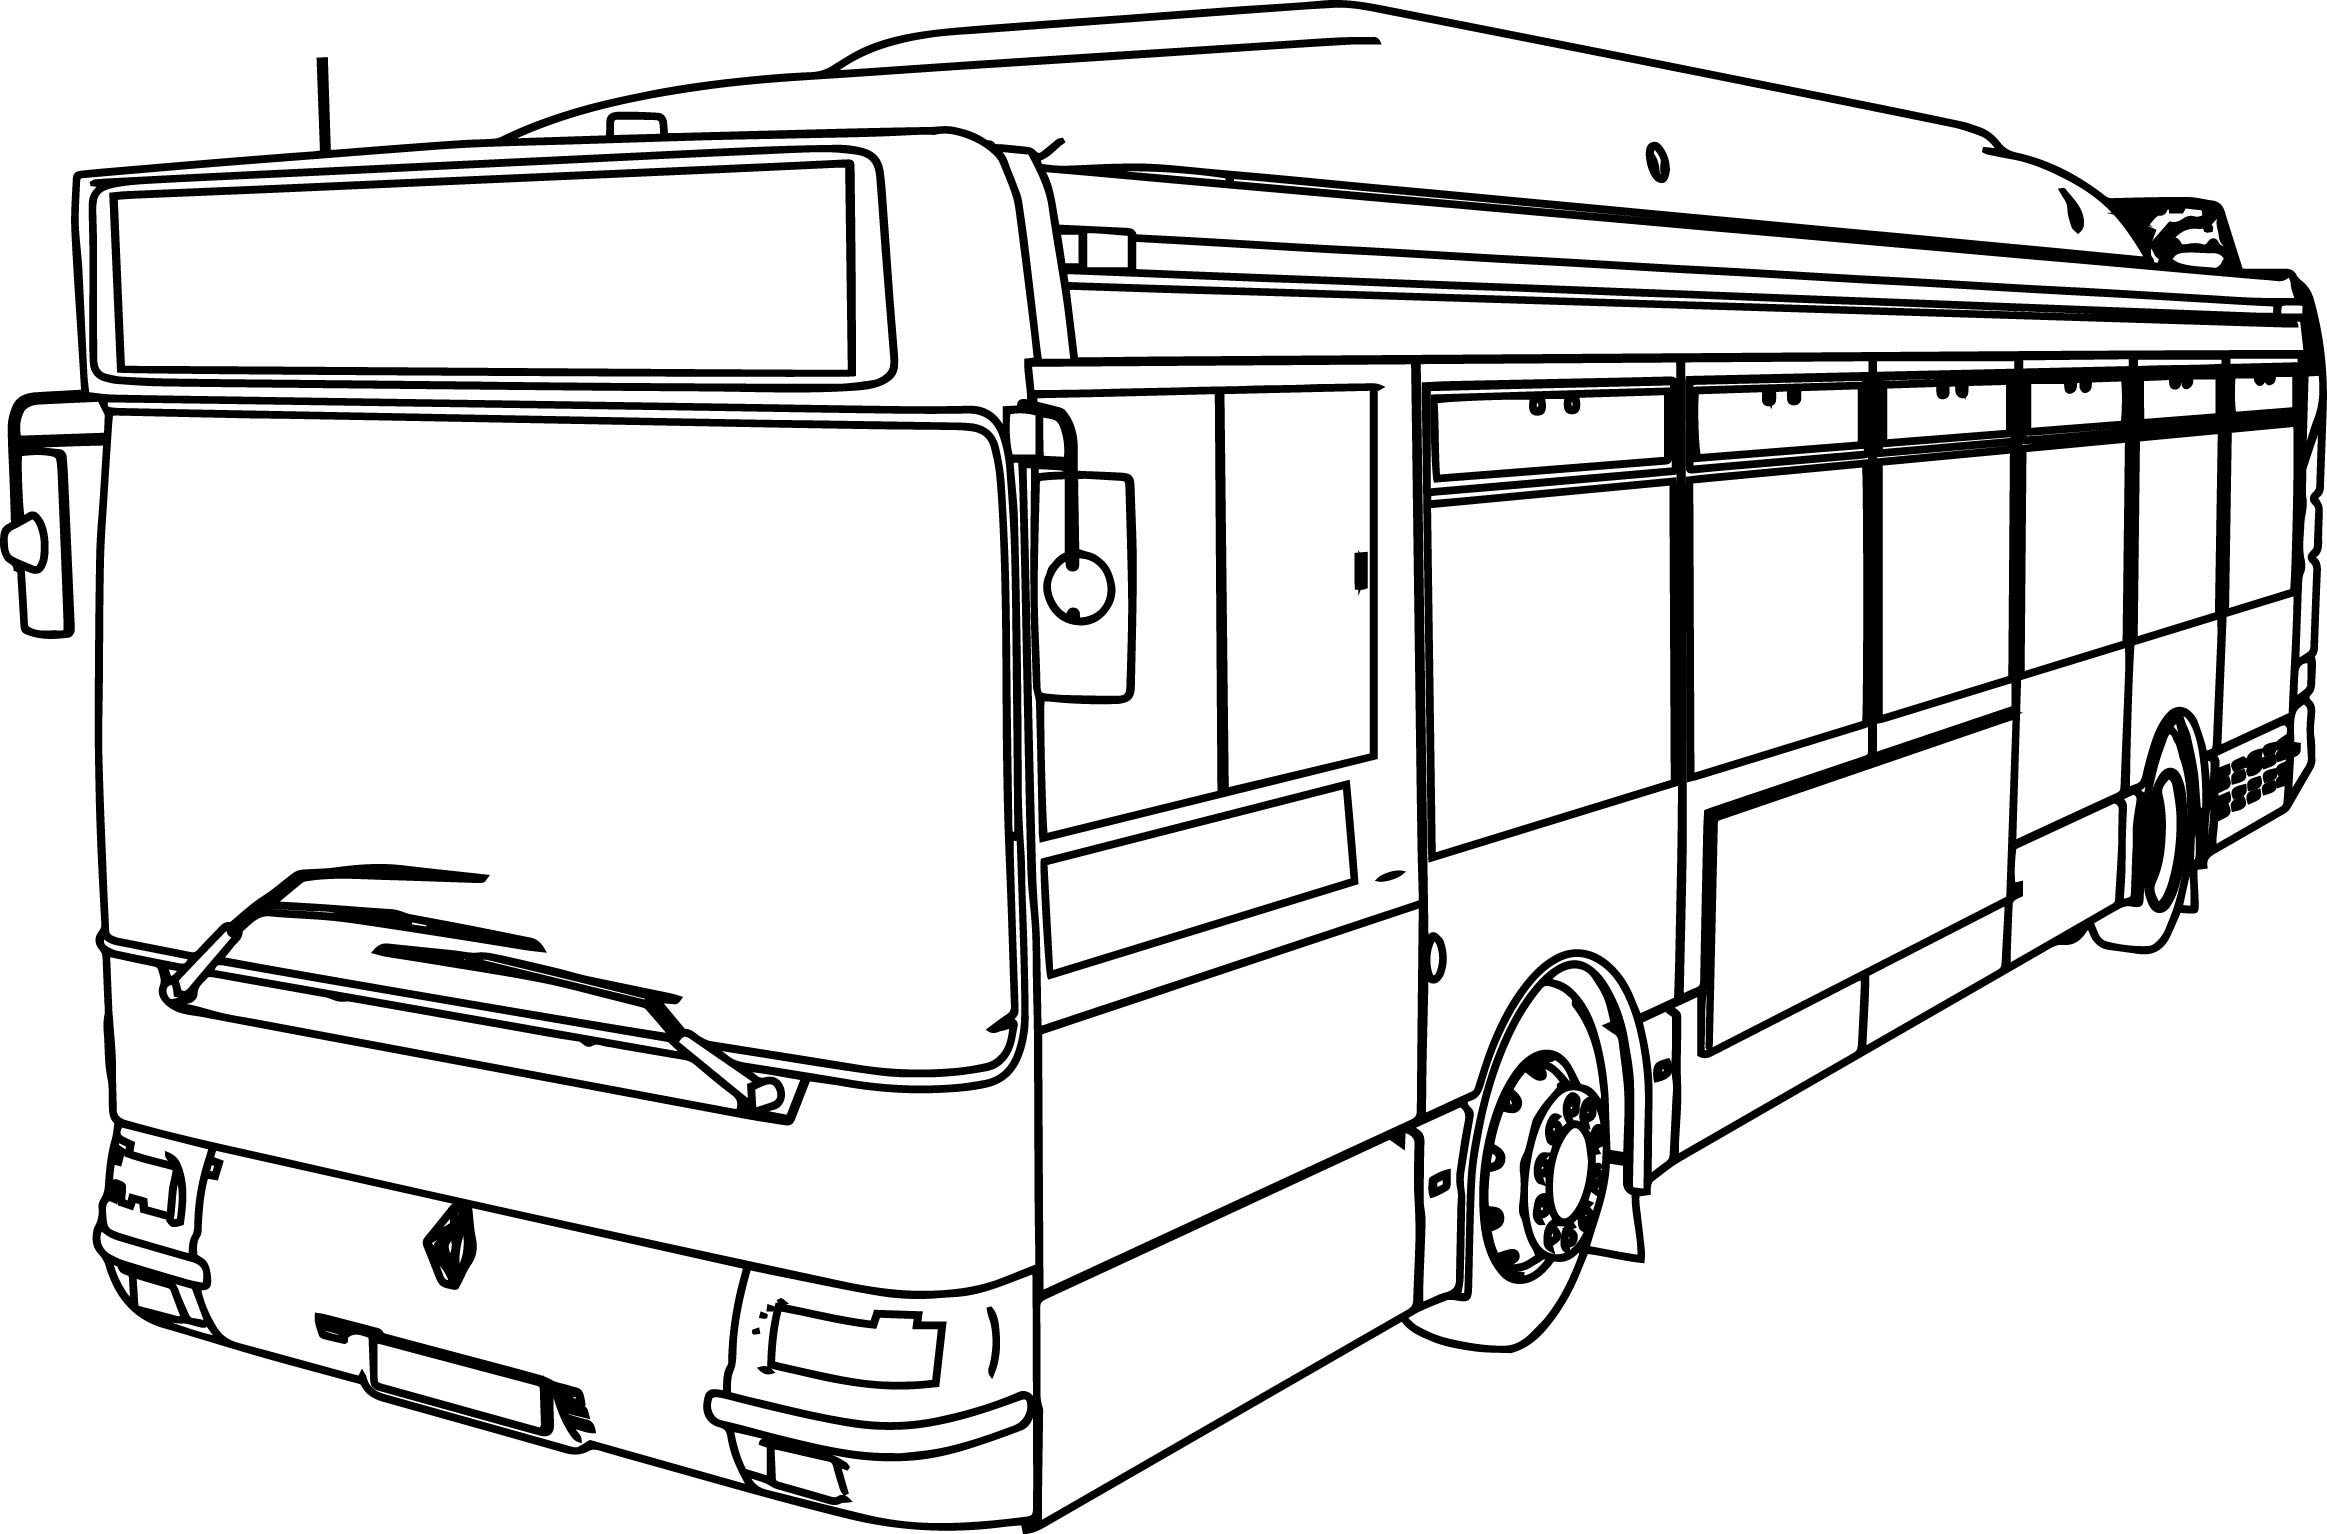 School Bus Coloring Page School Bus Coloring Page At Getdrawings Free For Personal Use